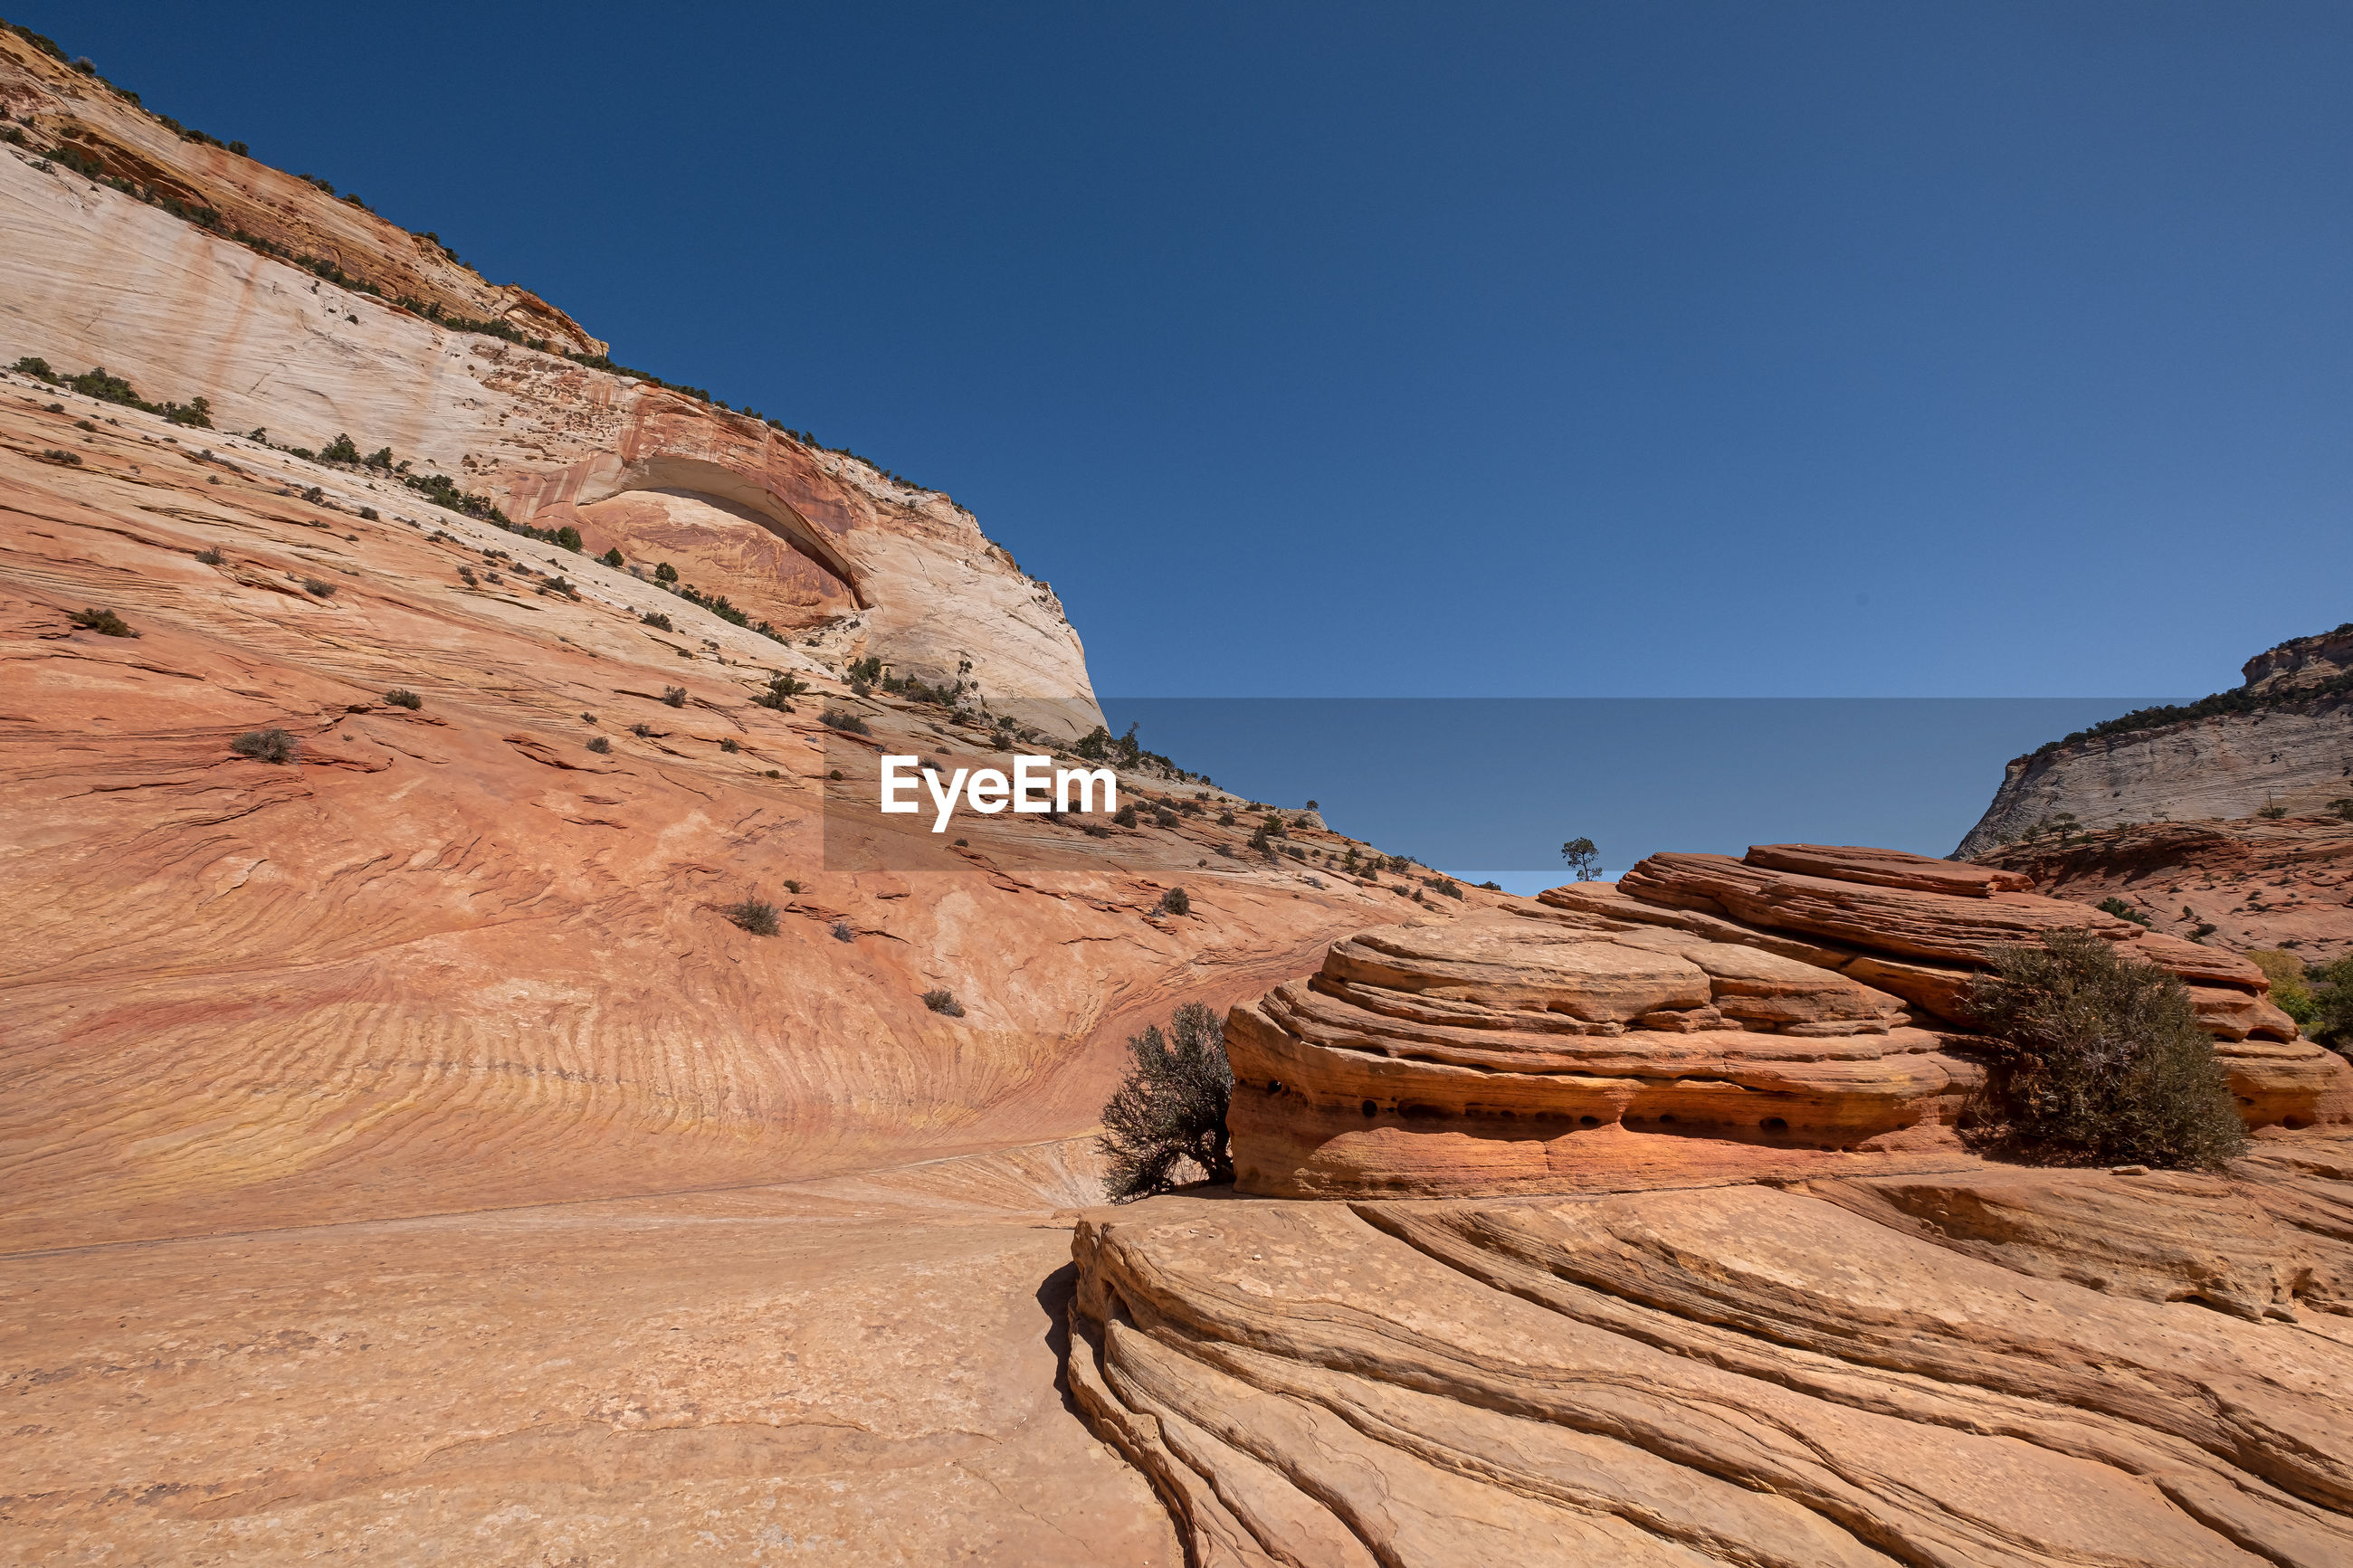 Red rock formation in zion national park utah, usa